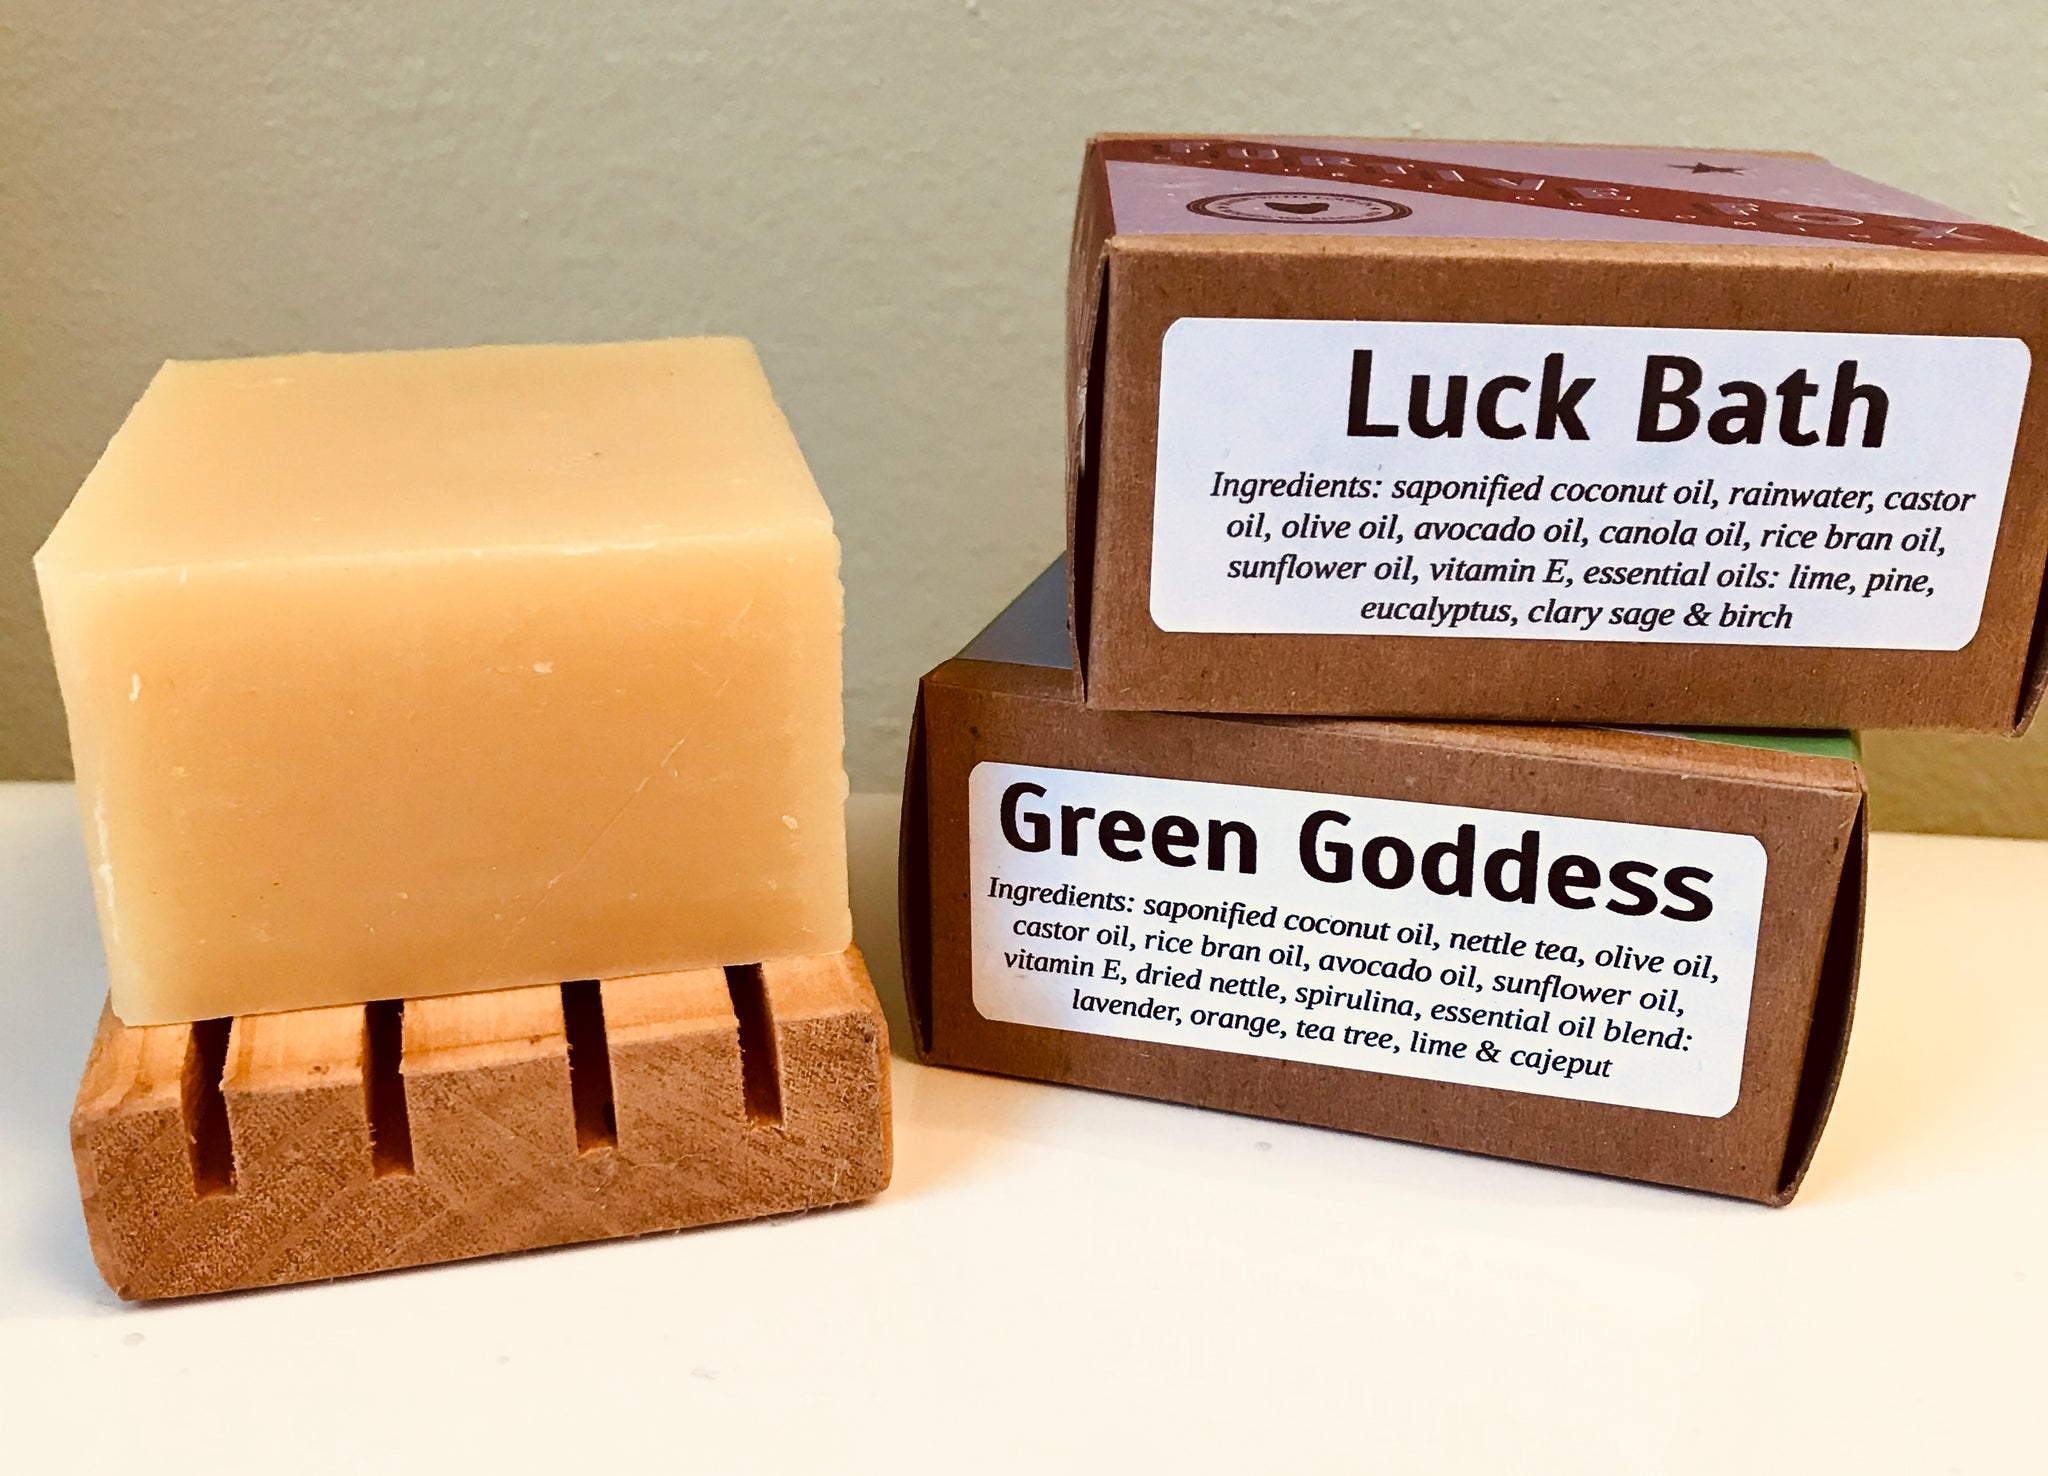 Two bars of soap for $13